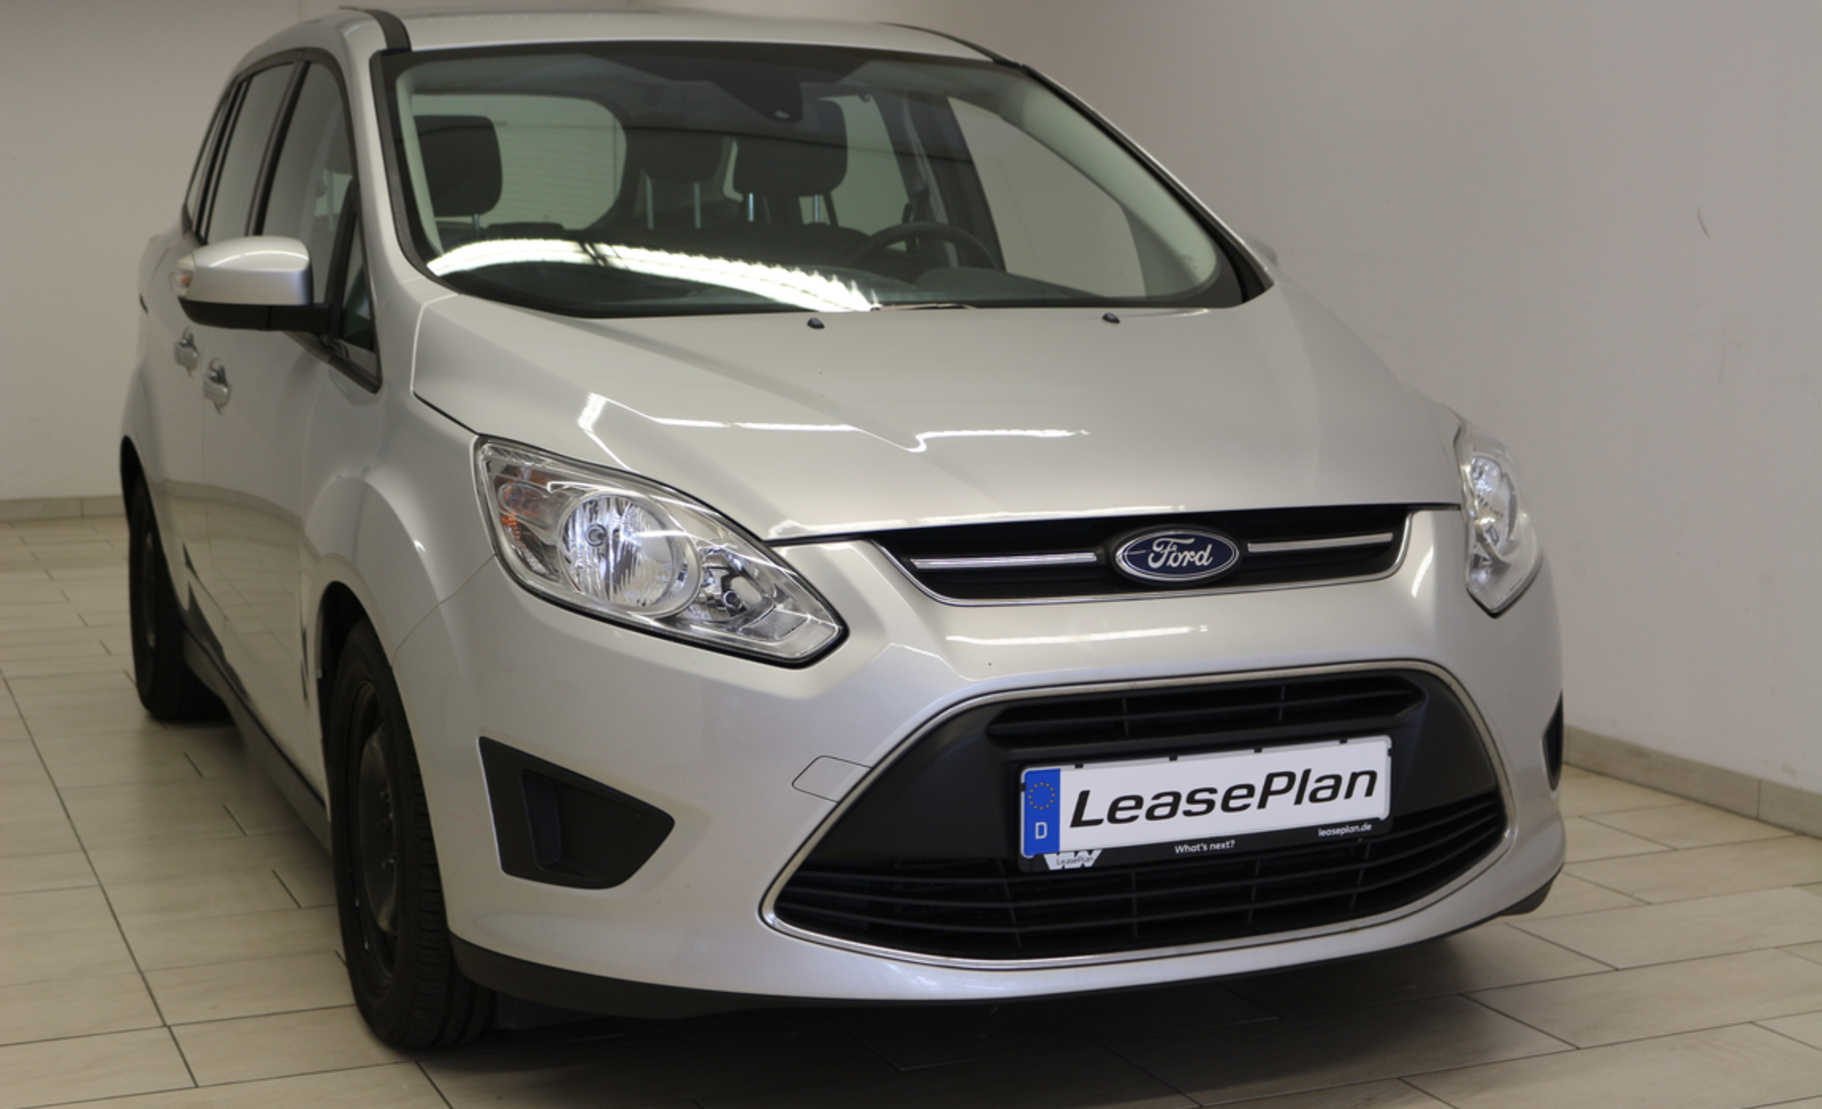 Ford Grand C-Max 2.0 TDCi Aut., Trend (498724) detail1